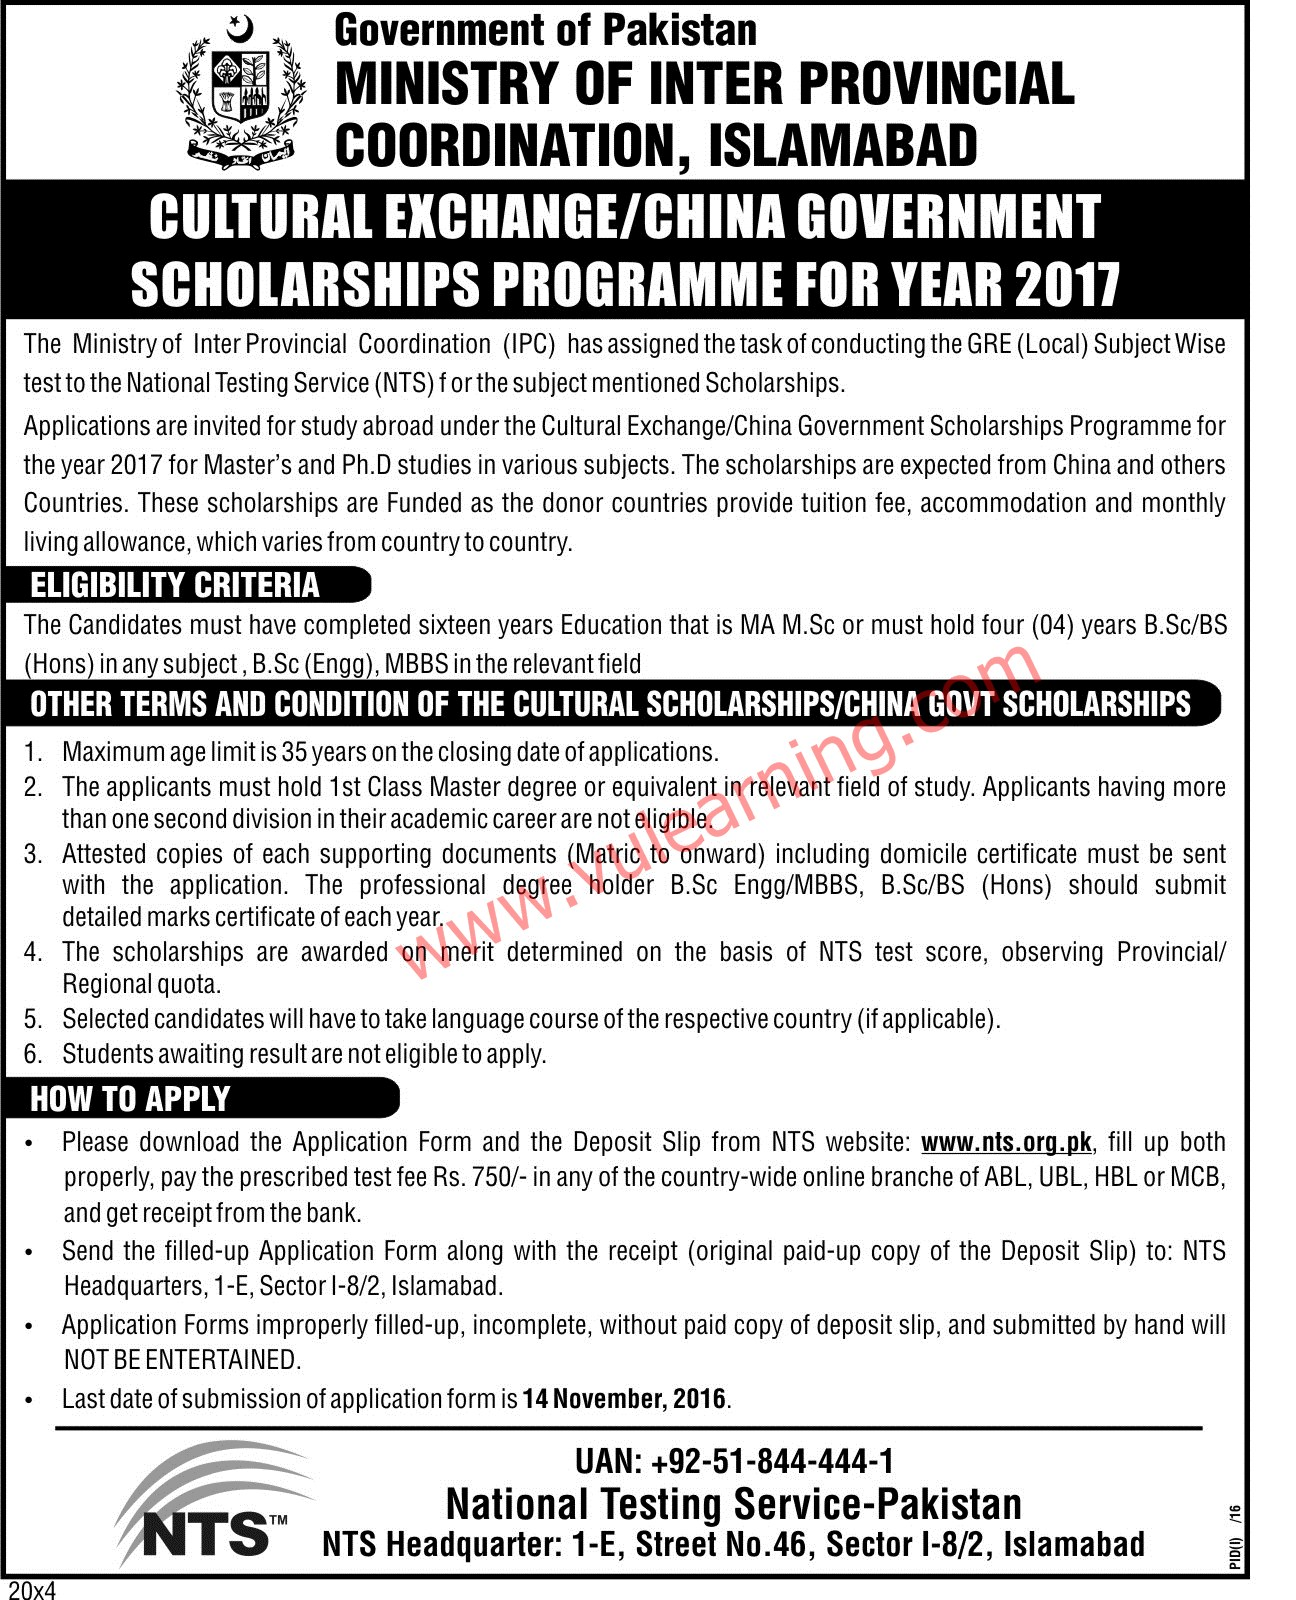 Cultural Exchange Scholarships Program for the year 2017